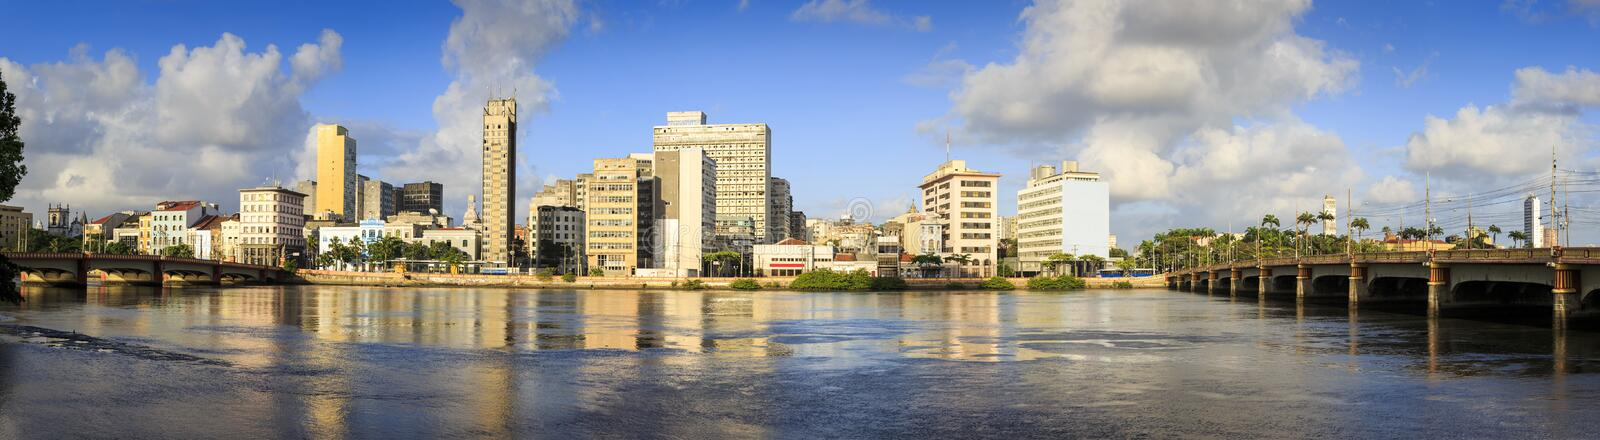 Recife. The historic city of Recife with its buildings date from the 17th century mixed with contemporary architecture royalty free stock photos